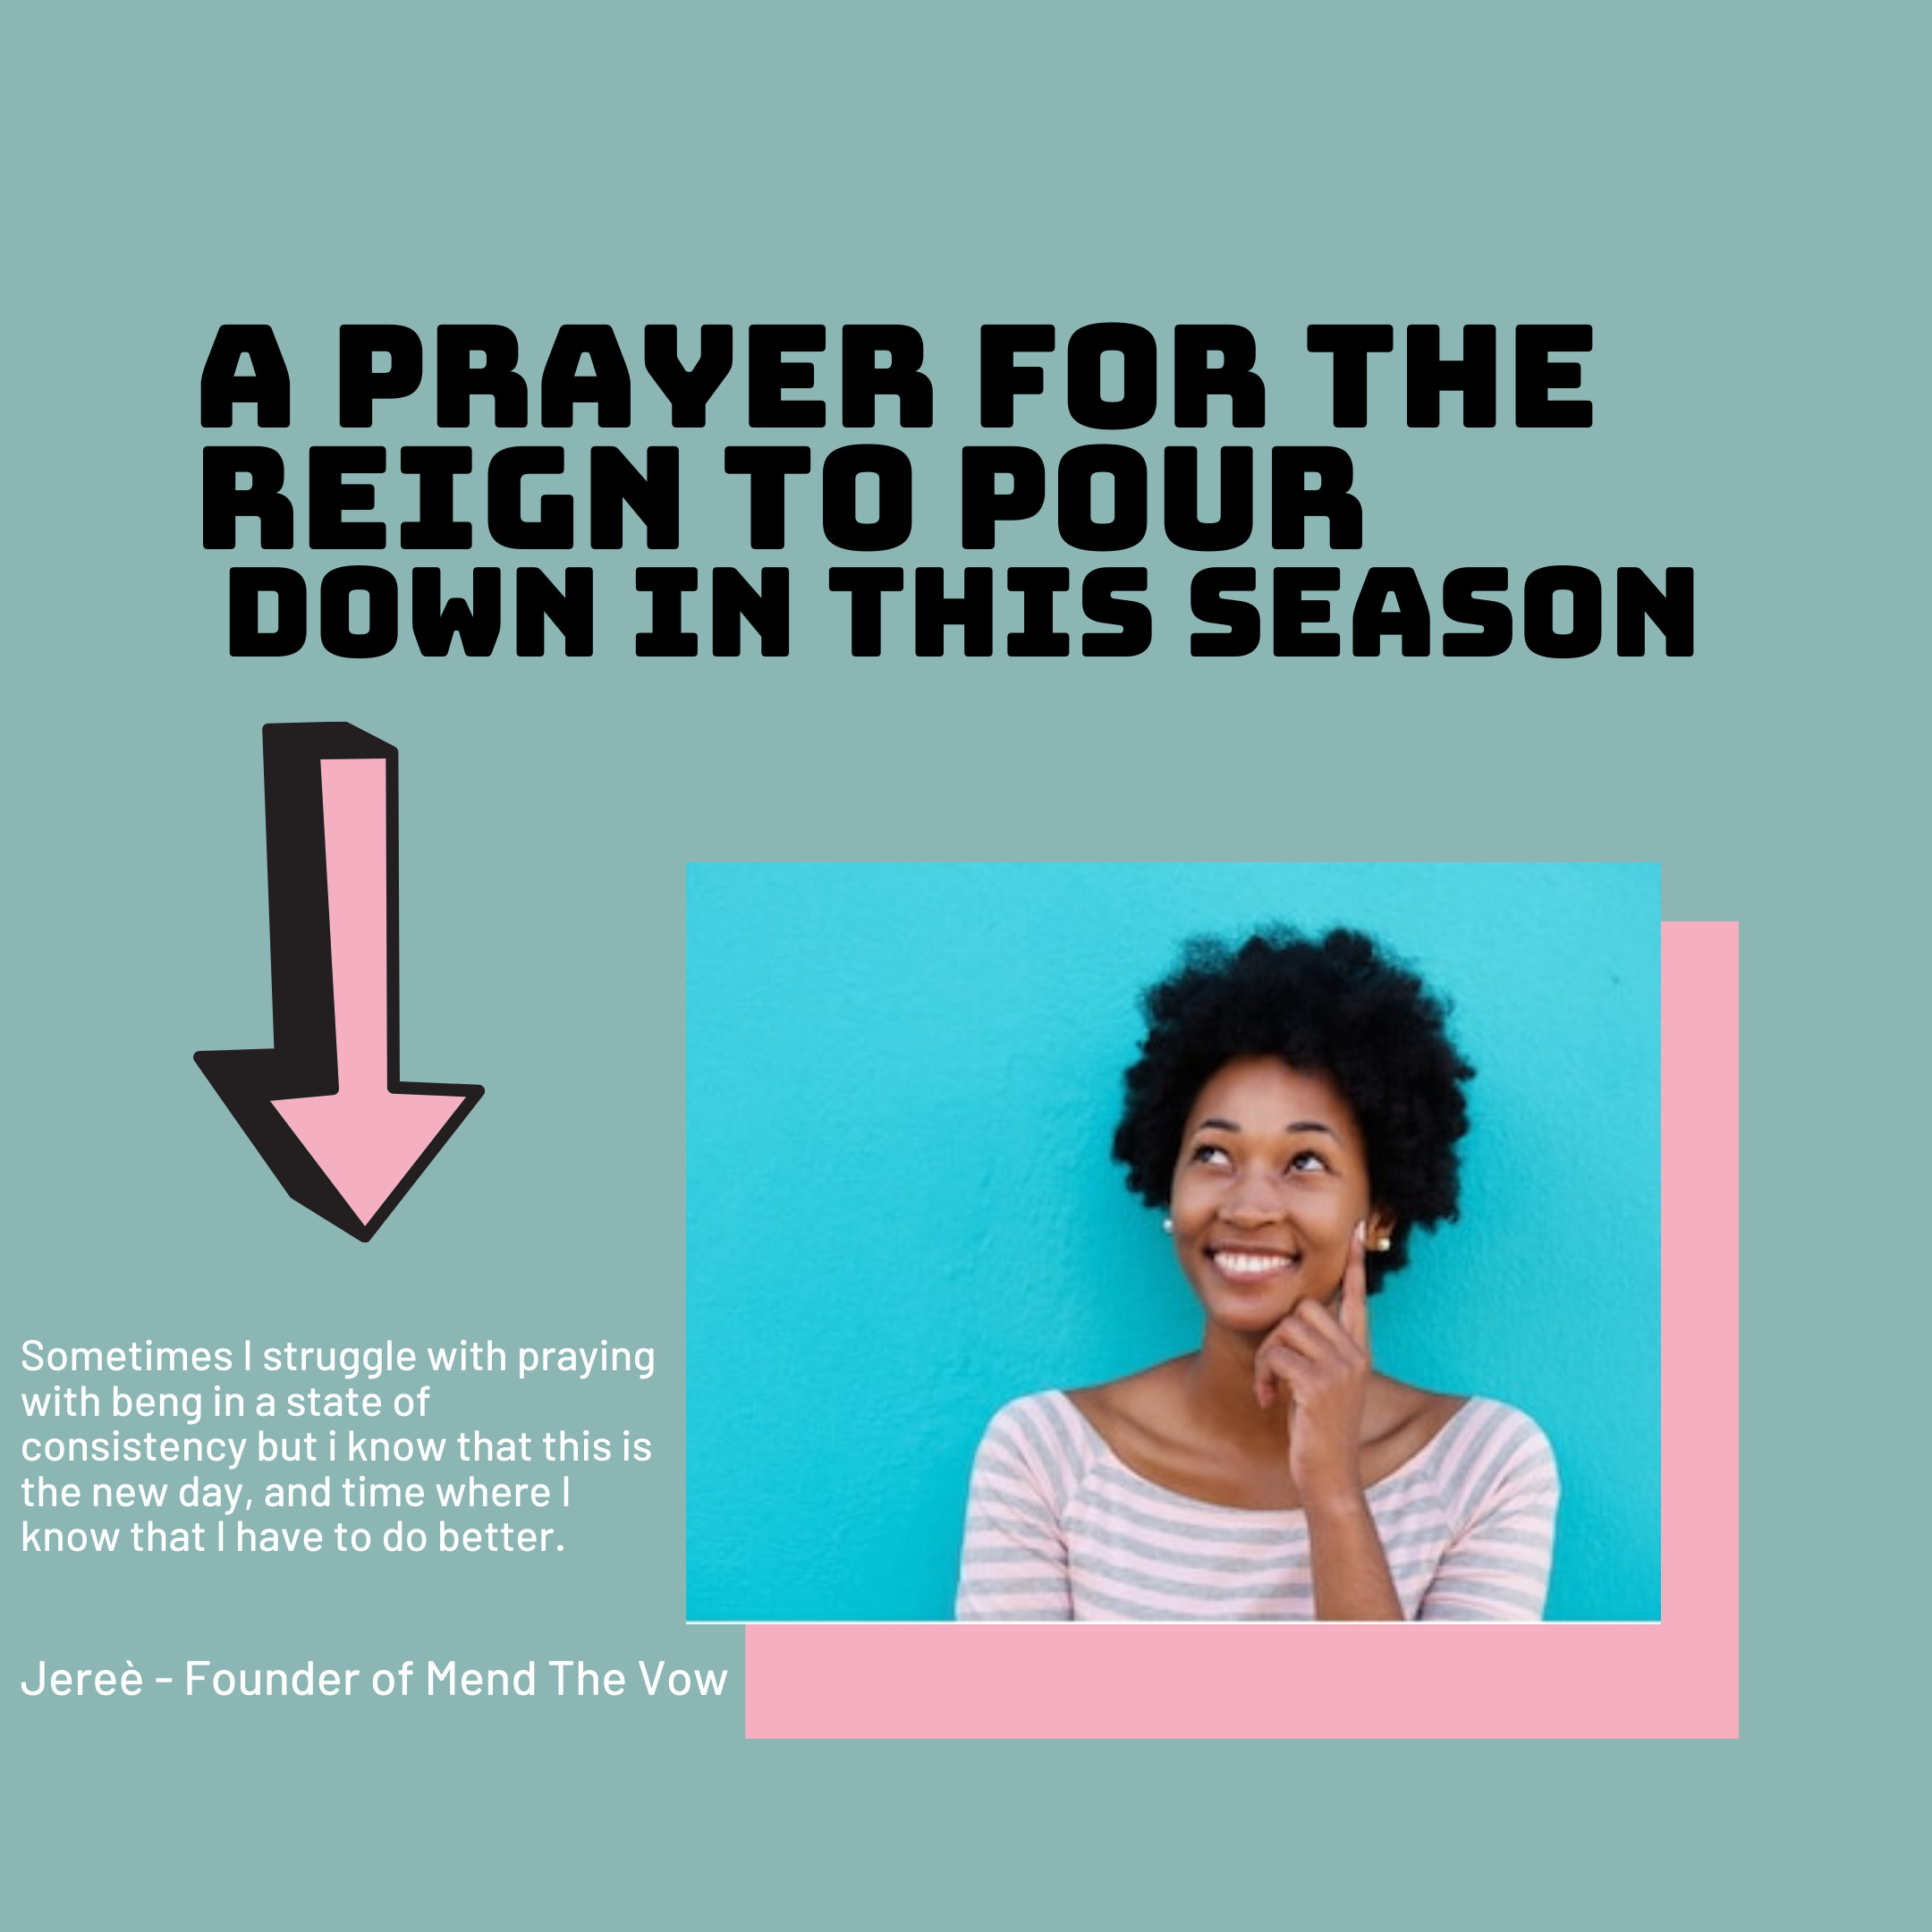 https://mendthevow.com/2020/12/a-prayer-for-the-reign-to-pour-down-in-this-season/in-the-custom-structure-text-box/